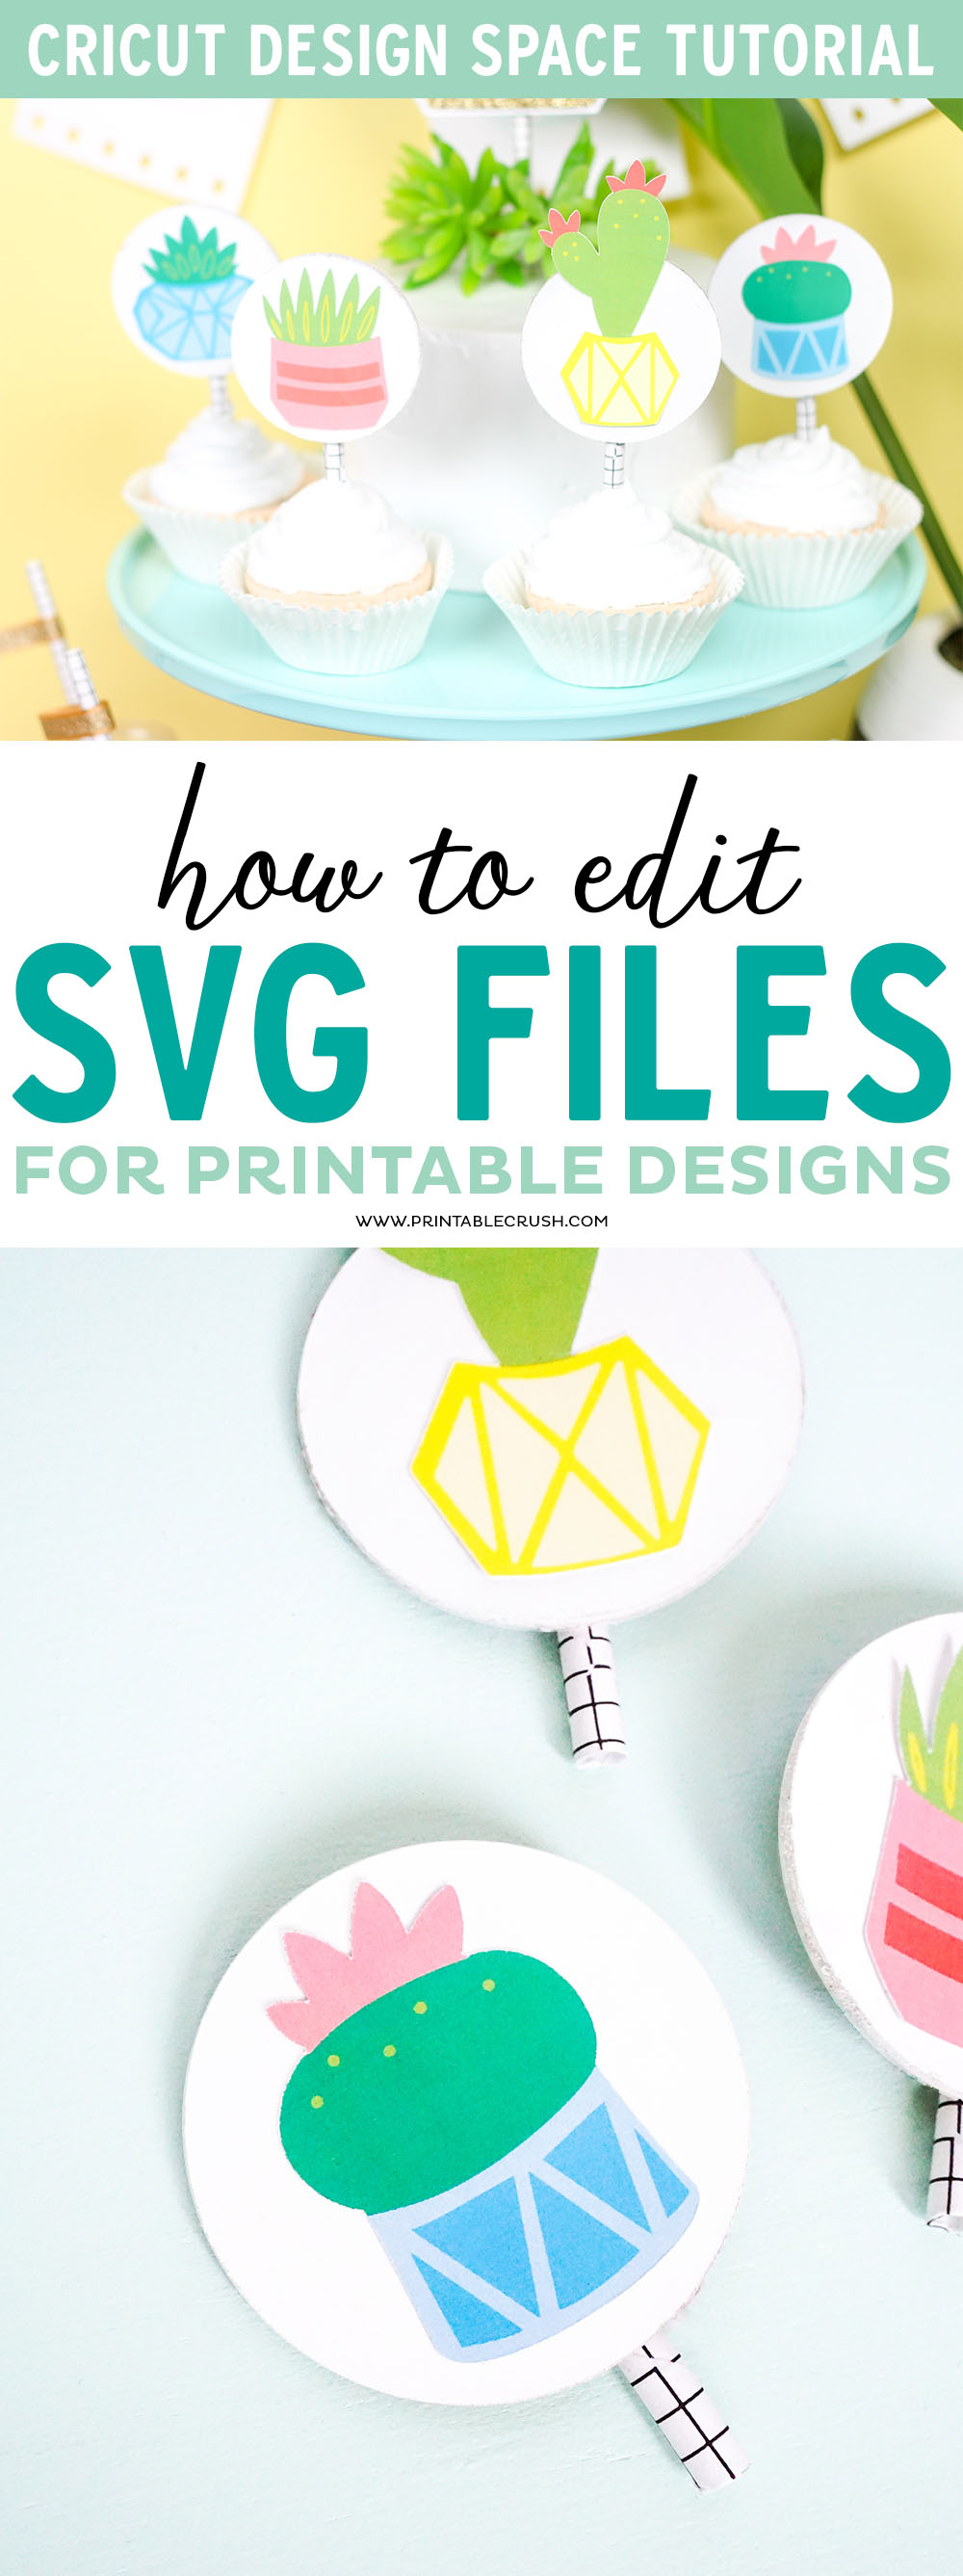 Create printable designs in Cricut Design Space by editing svg files